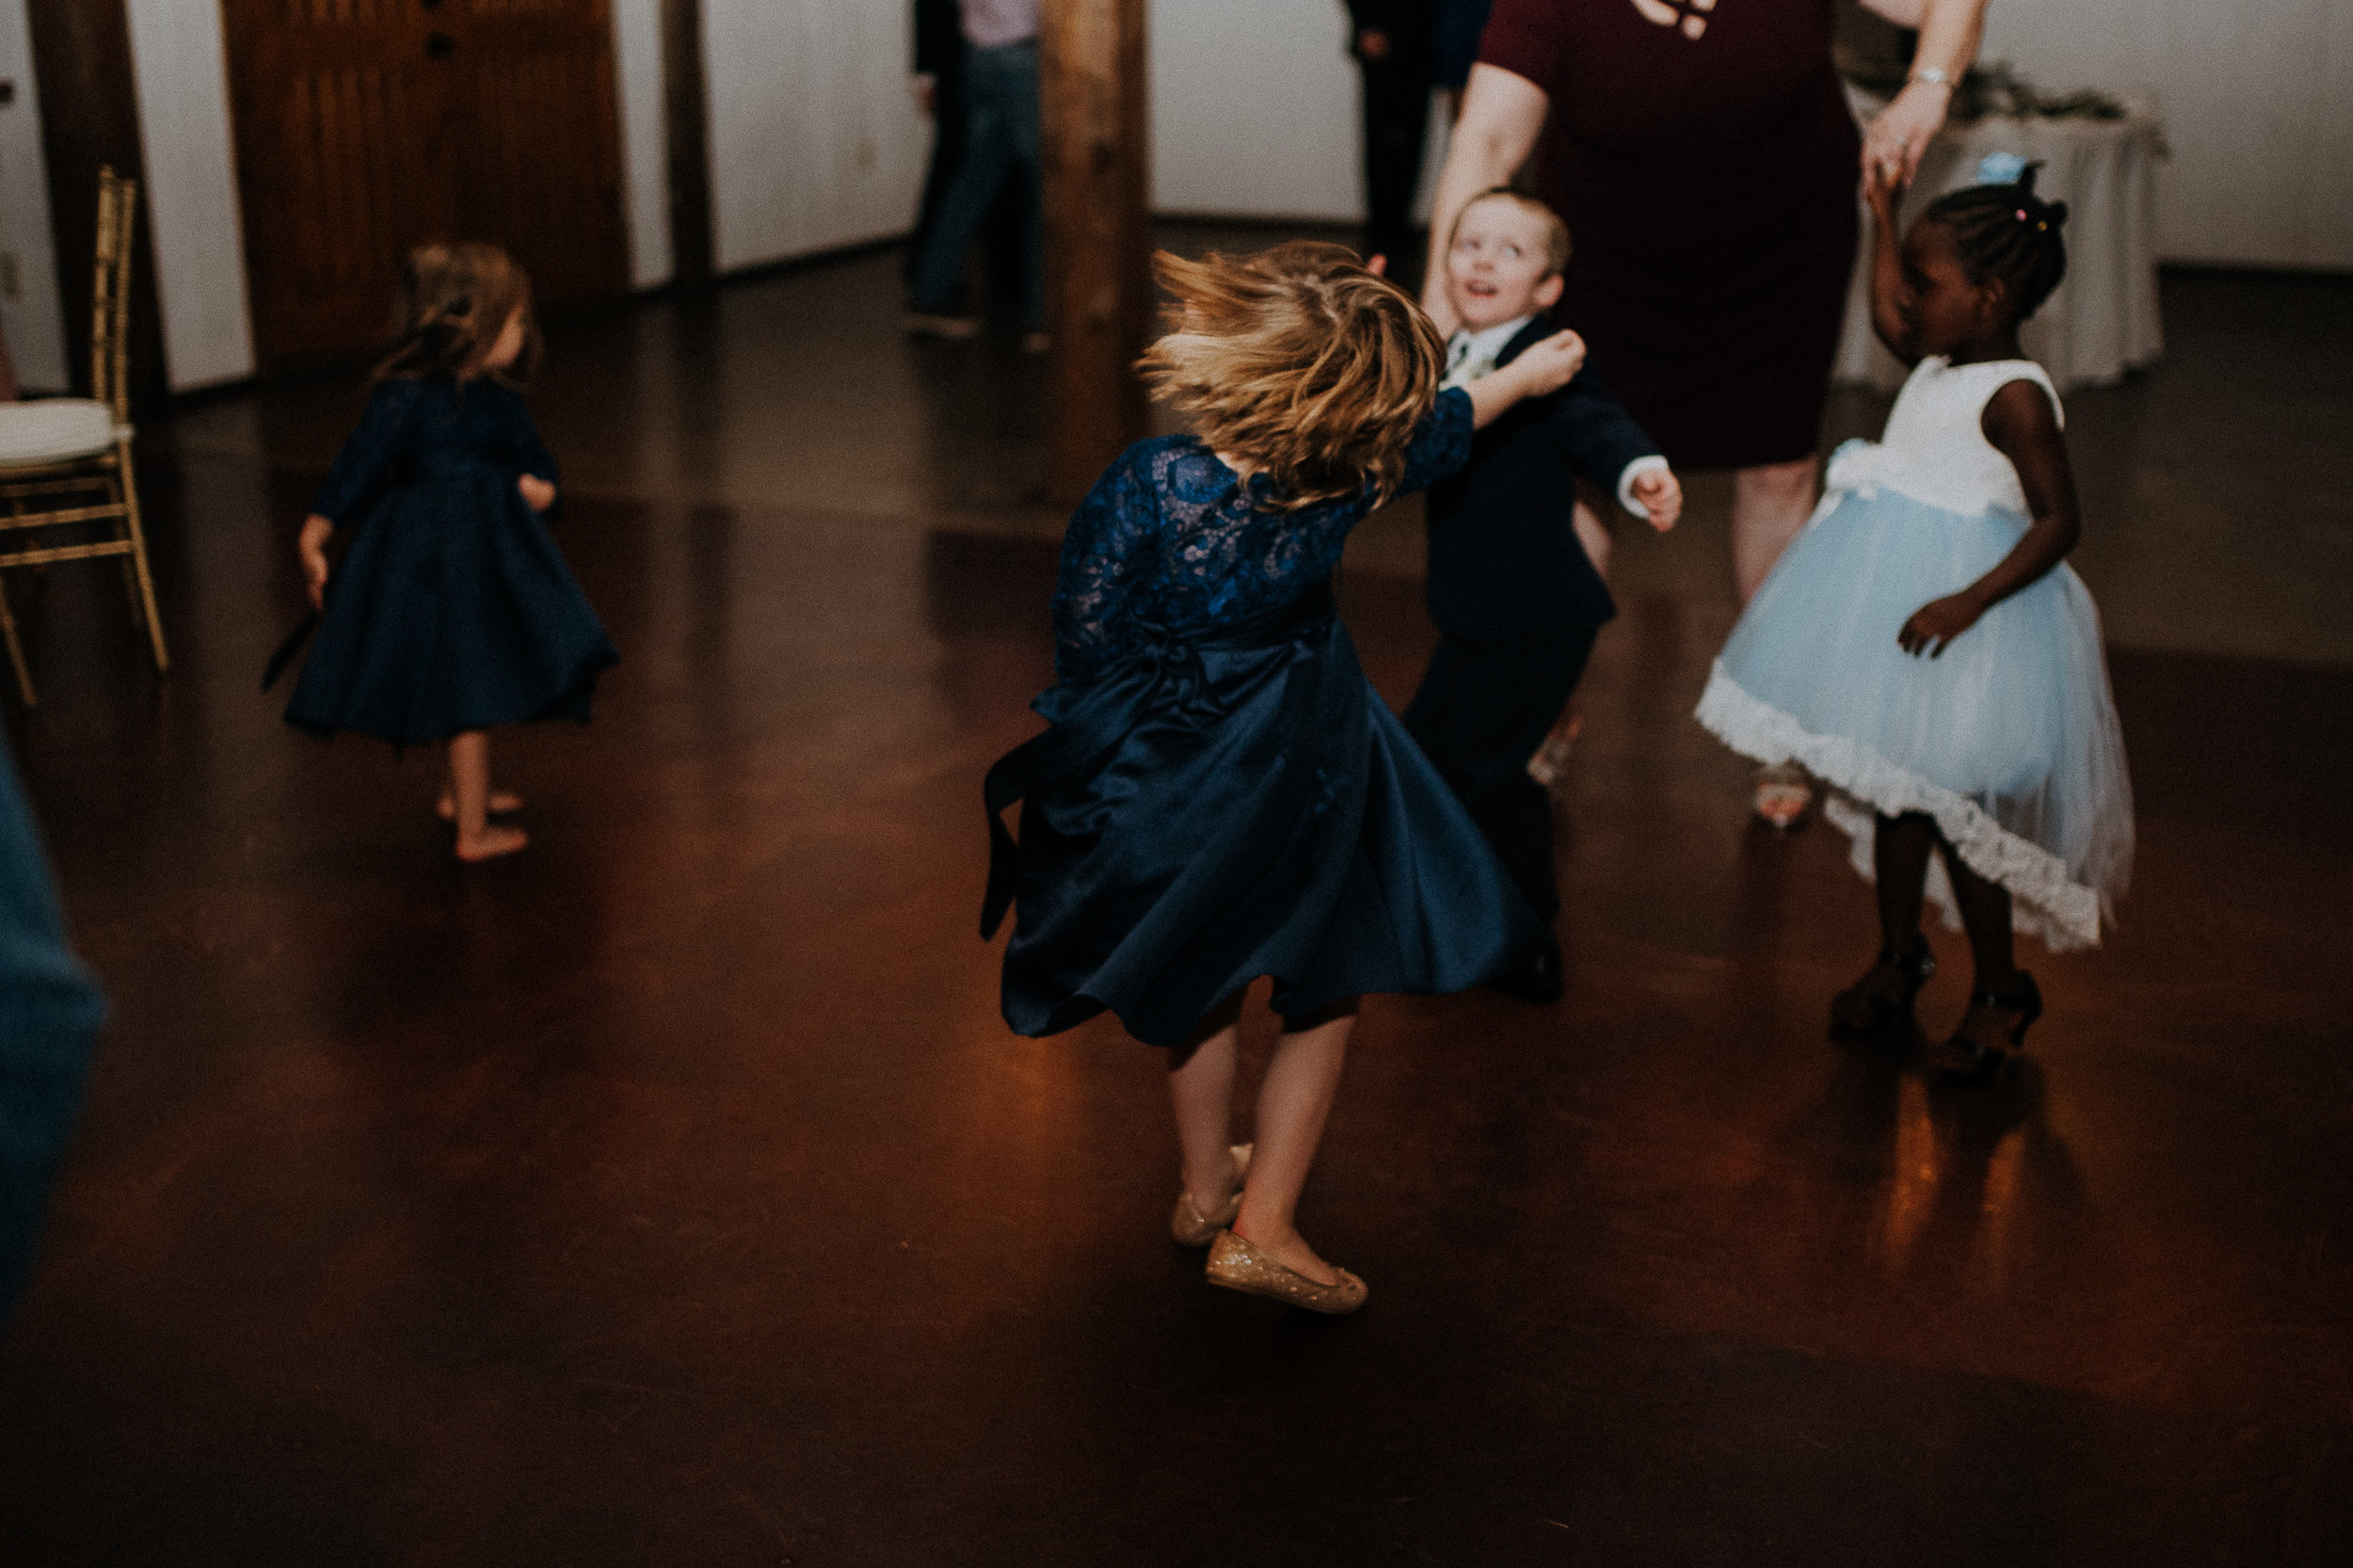 Dallas_Fort_Worth_wedding_Photographer_lone_star_mansion_burleson_texas_130